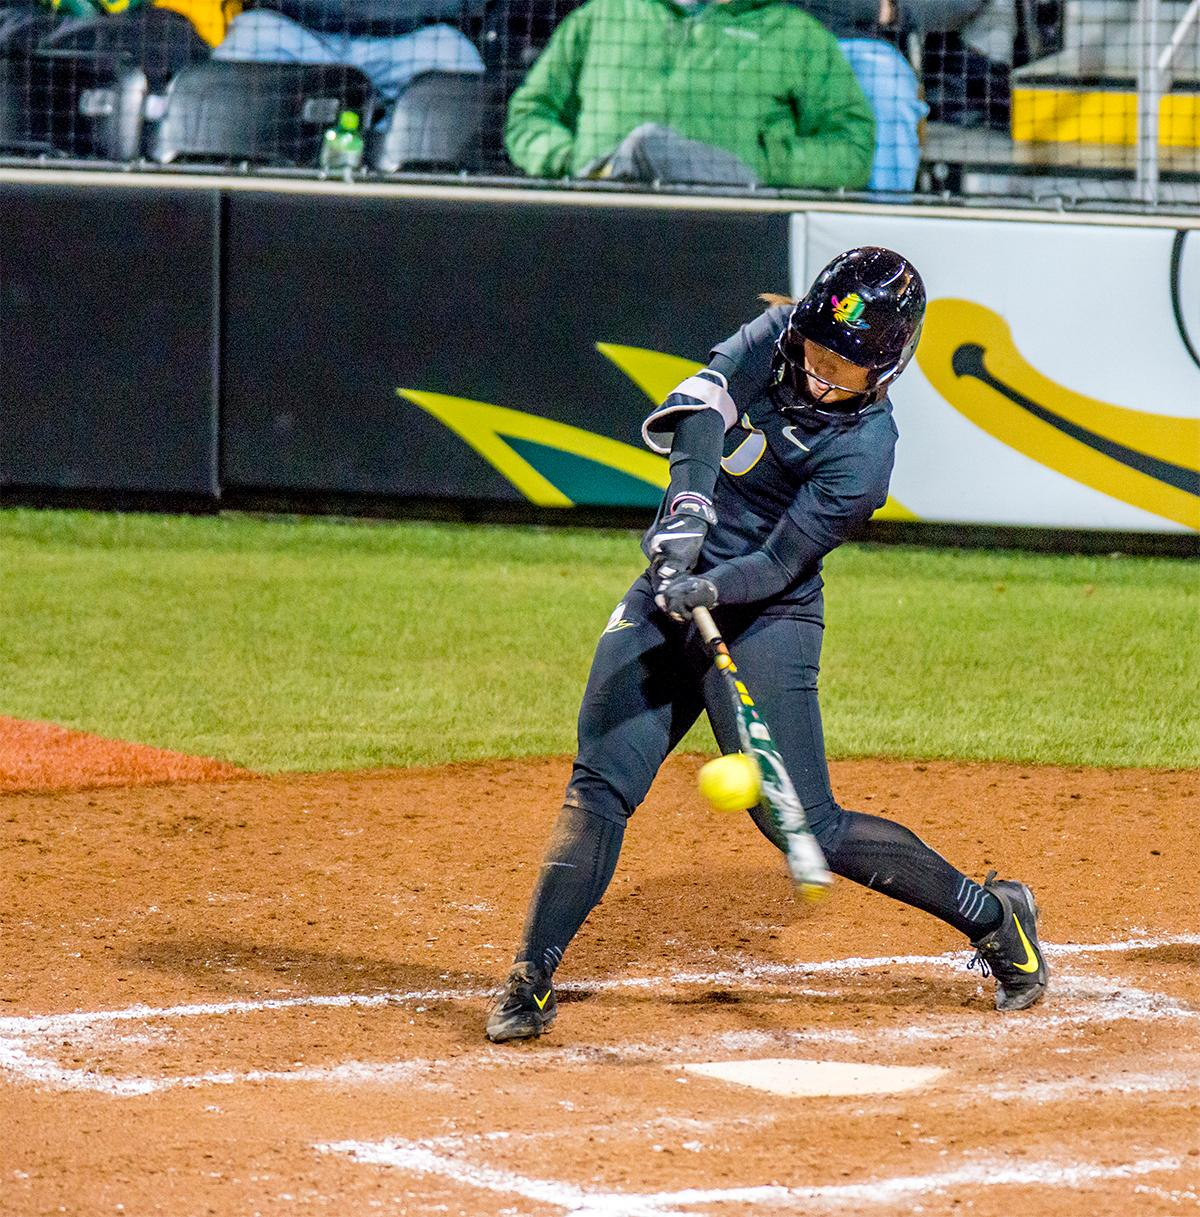 The Duck's Nikki Udria (#3) connects with the ball. In Game Two of a three-game series, the University of Oregon Ducks softball team defeated the University of Washington Huskies 4-1 Friday night in Jane Sanders Stadium. Danica Mercado (#2), Alexis Mack (#10) and Mia Camuso (#7) all scored in the win, Mack twice. The Ducks play the Huskies for the tie breaker on Saturday with the first pitch at noon. Photo by August Frank, Oregon News Lab